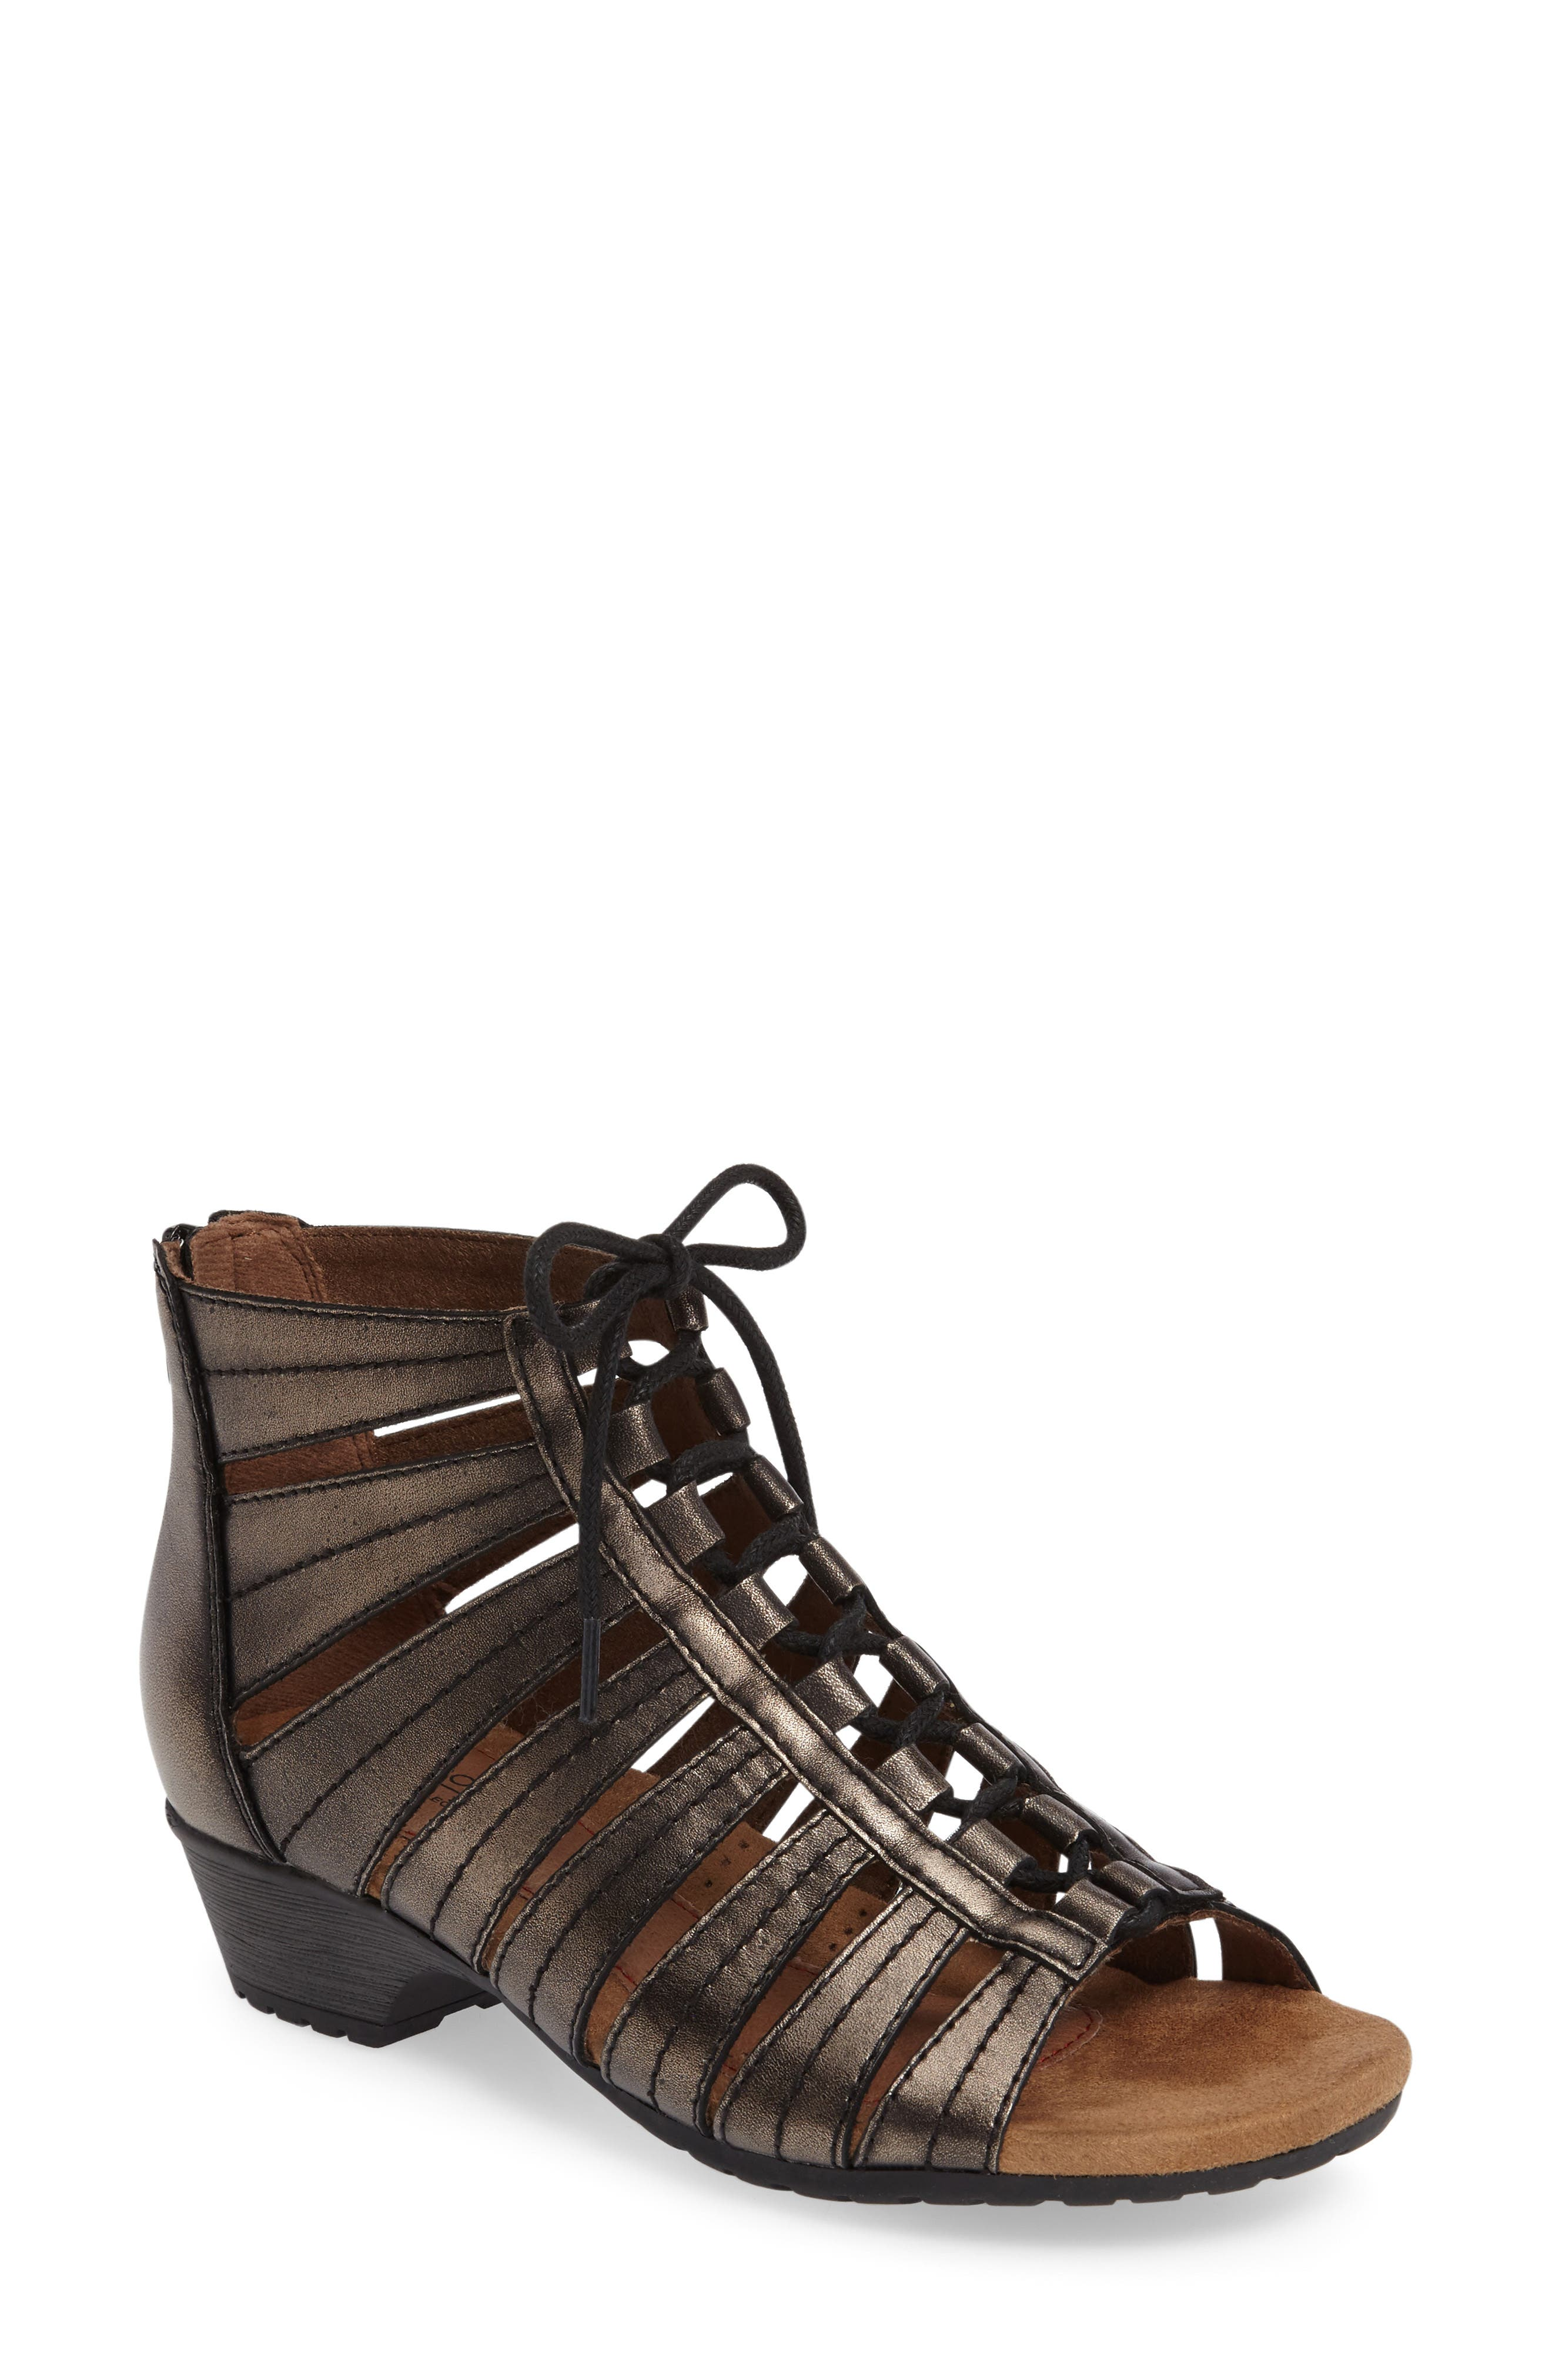 'Gabby' Lace-Up Sandal,                             Main thumbnail 4, color,